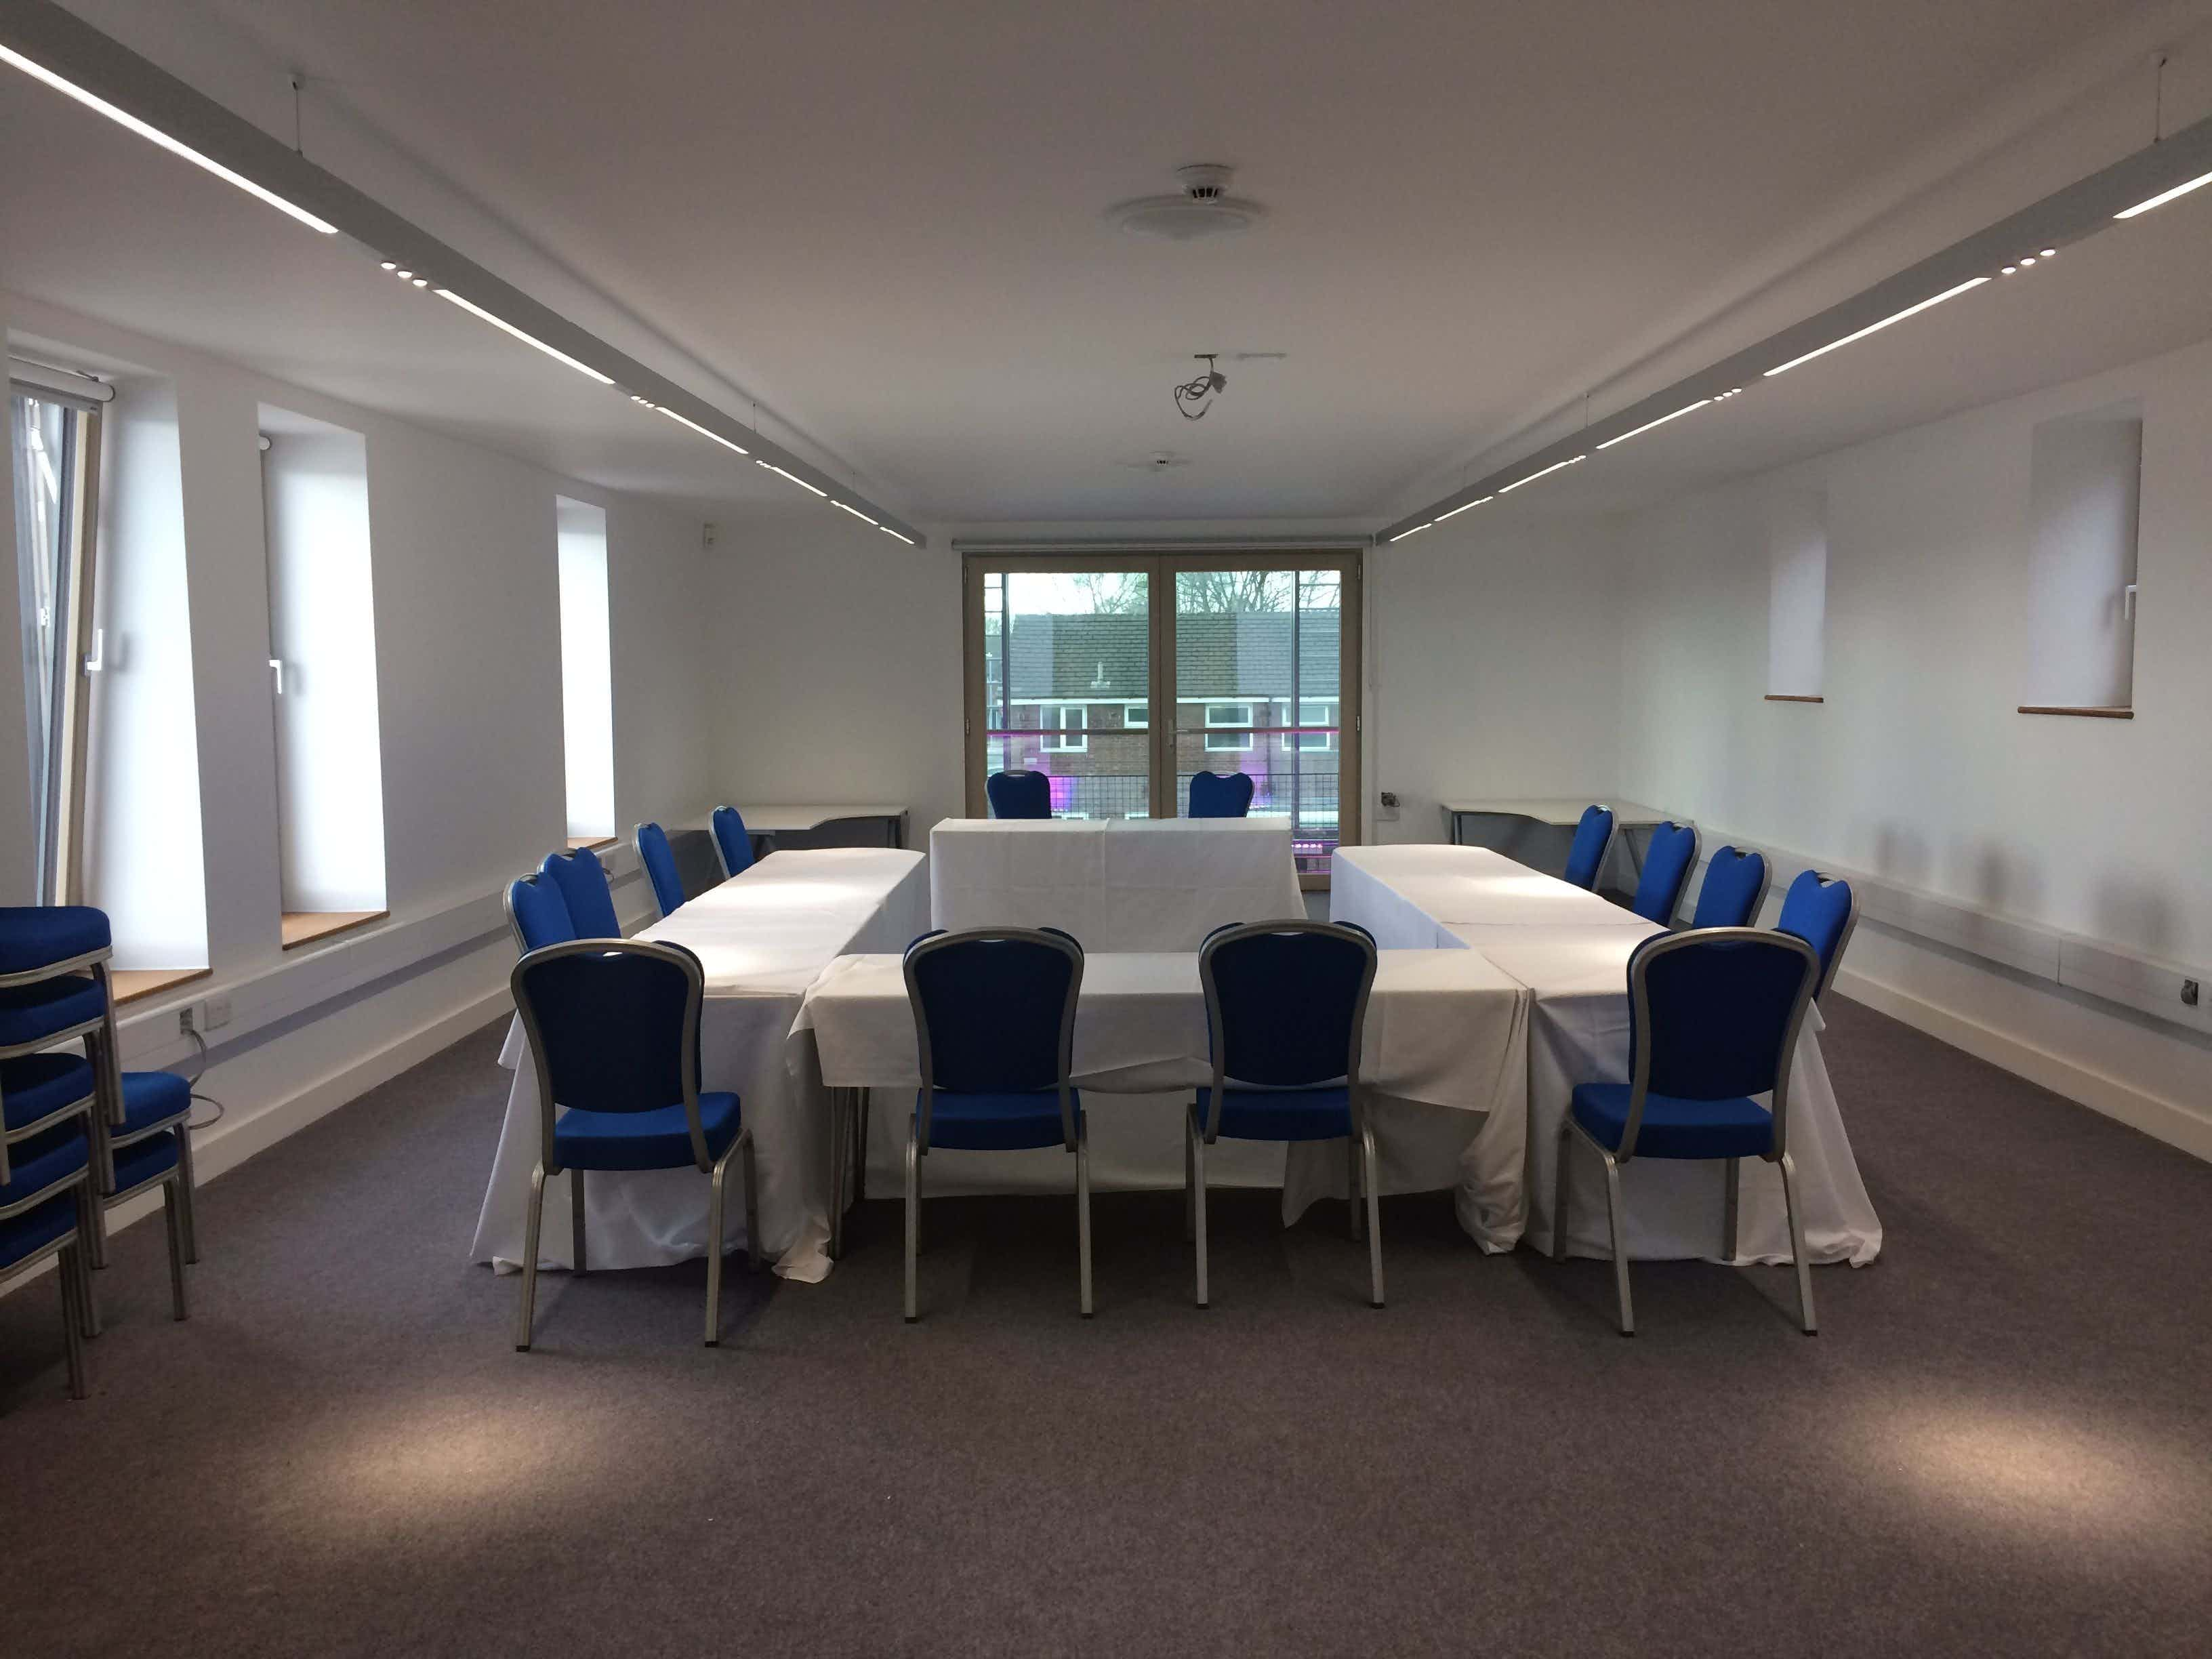 The Learning Space, The Monastery Manchester